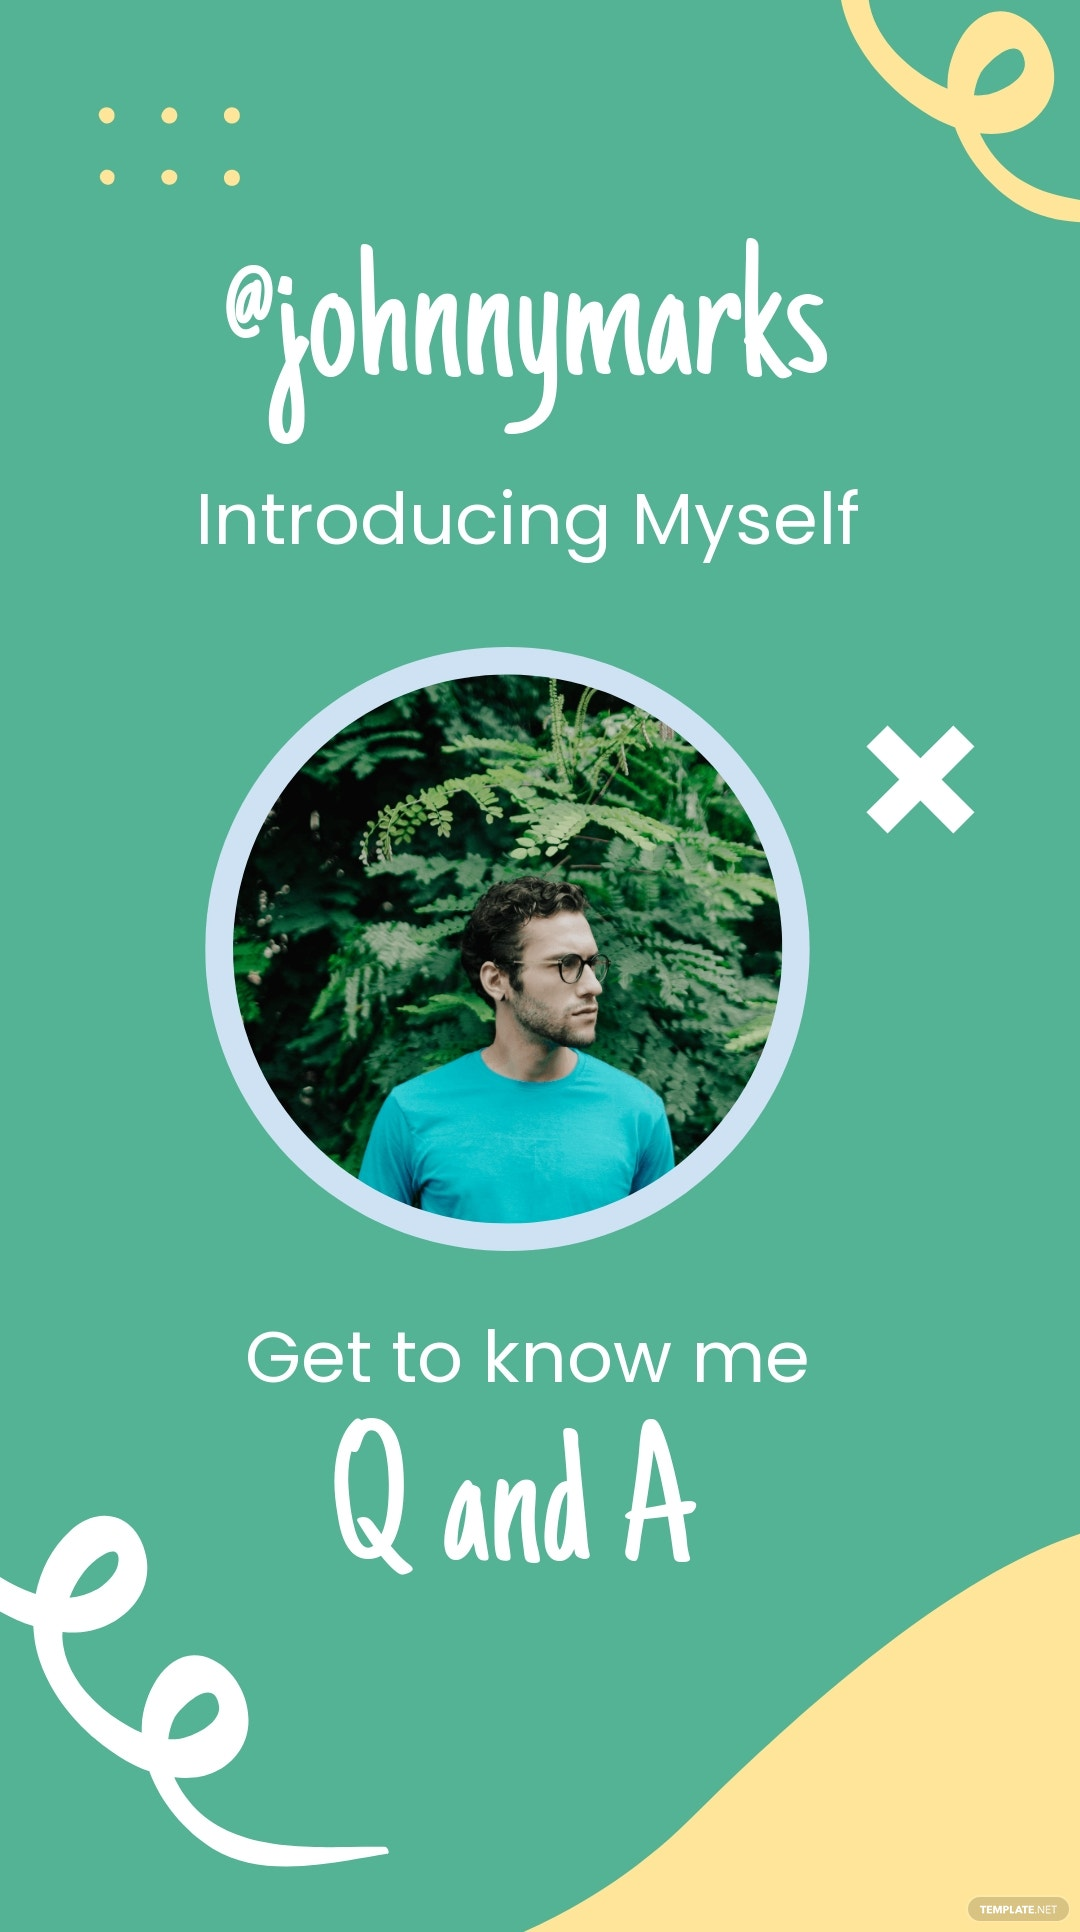 Get To Know Me Introduction Instagram Story Template.jpe